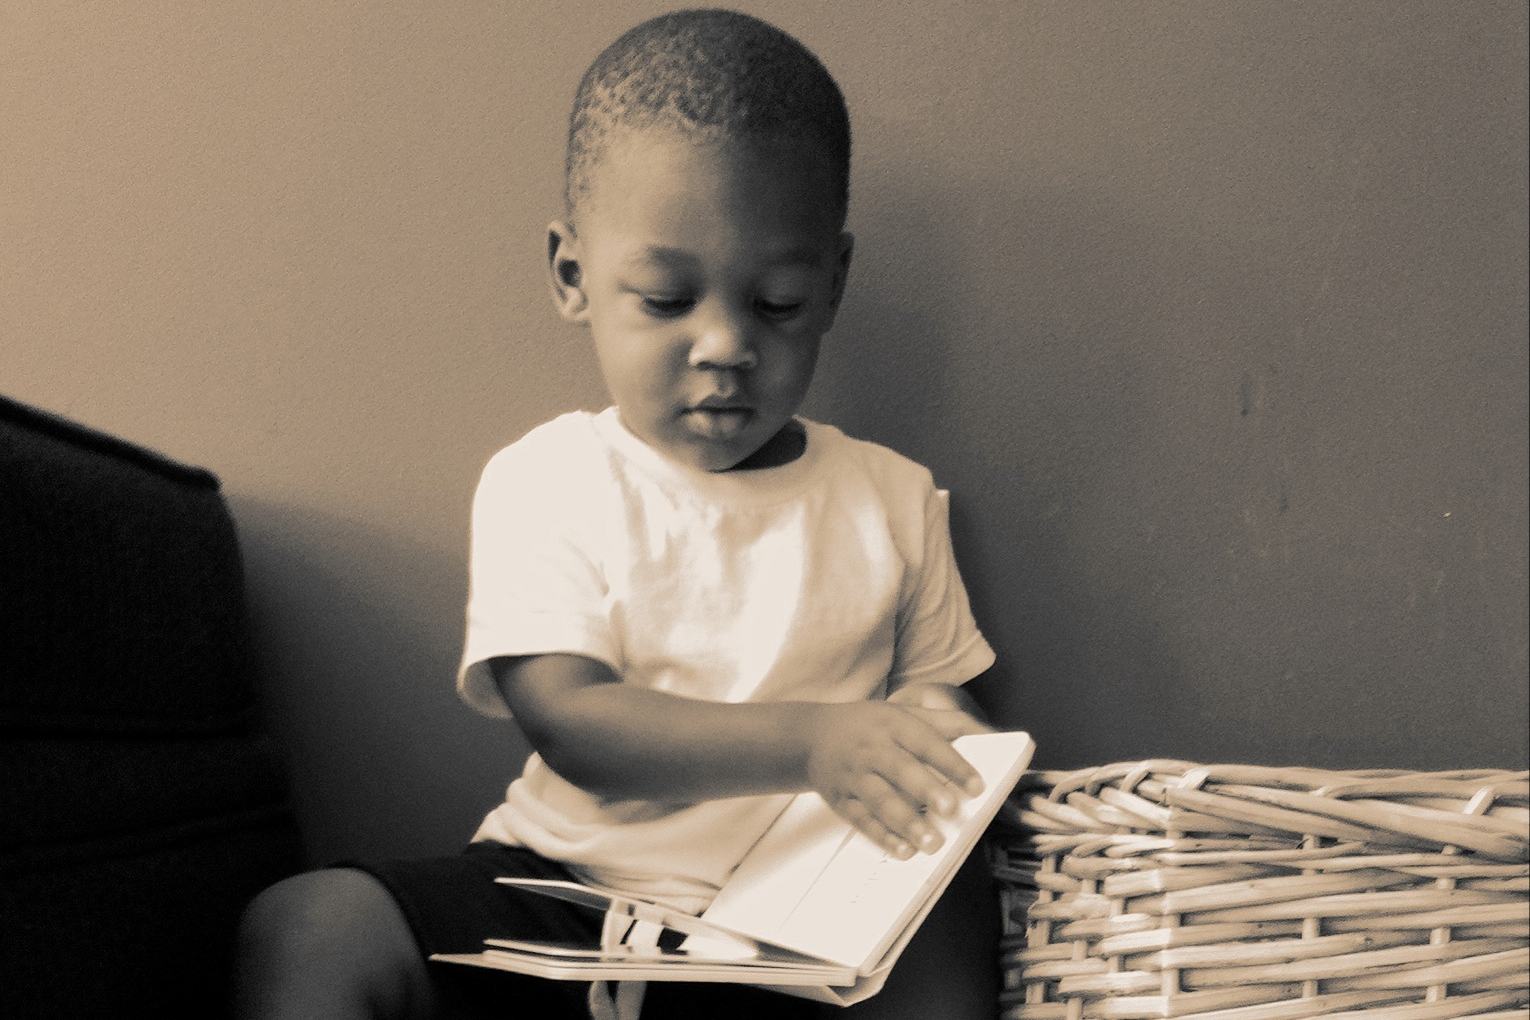 Children who are read to as infants show significant developmental advantages between the ages of 3-5. (Jason Parks, Flickr)